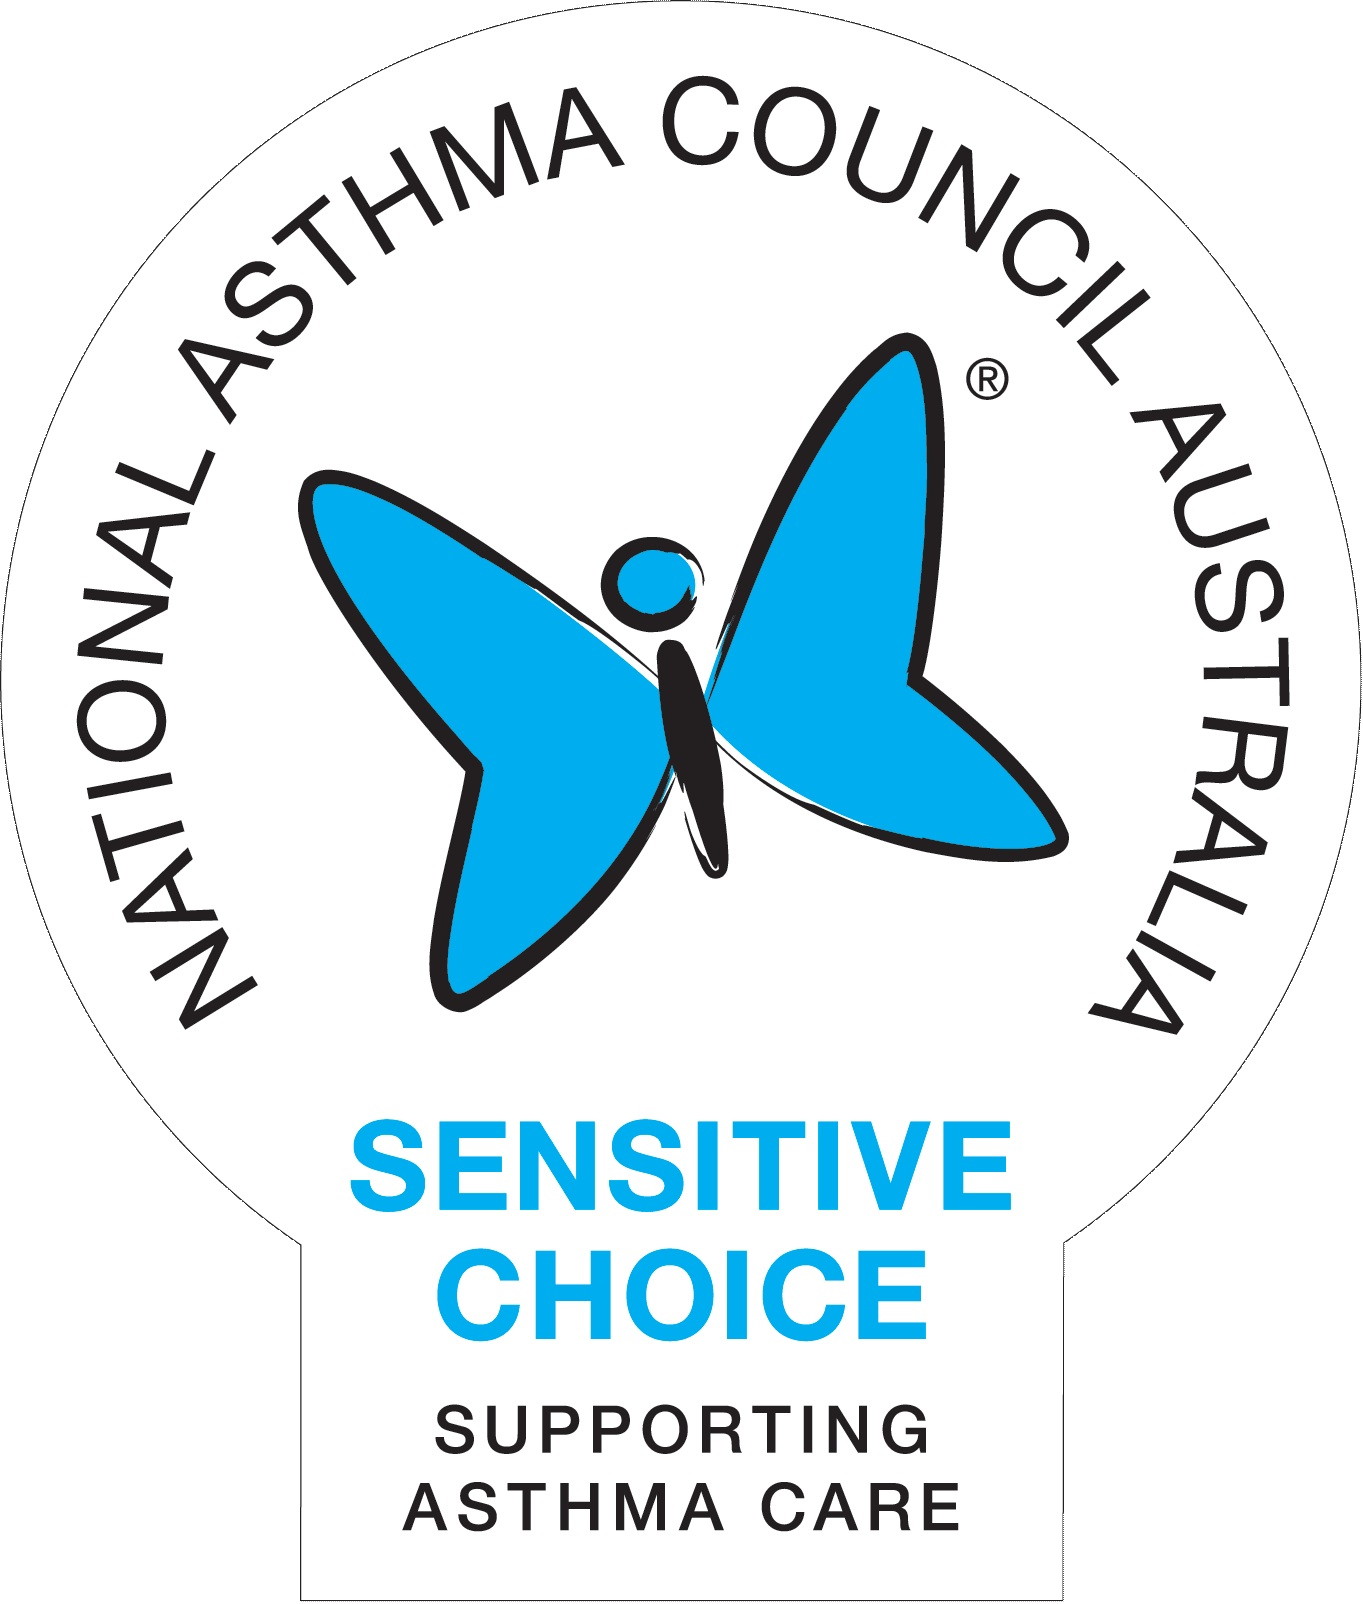 National Asthma Council Approved